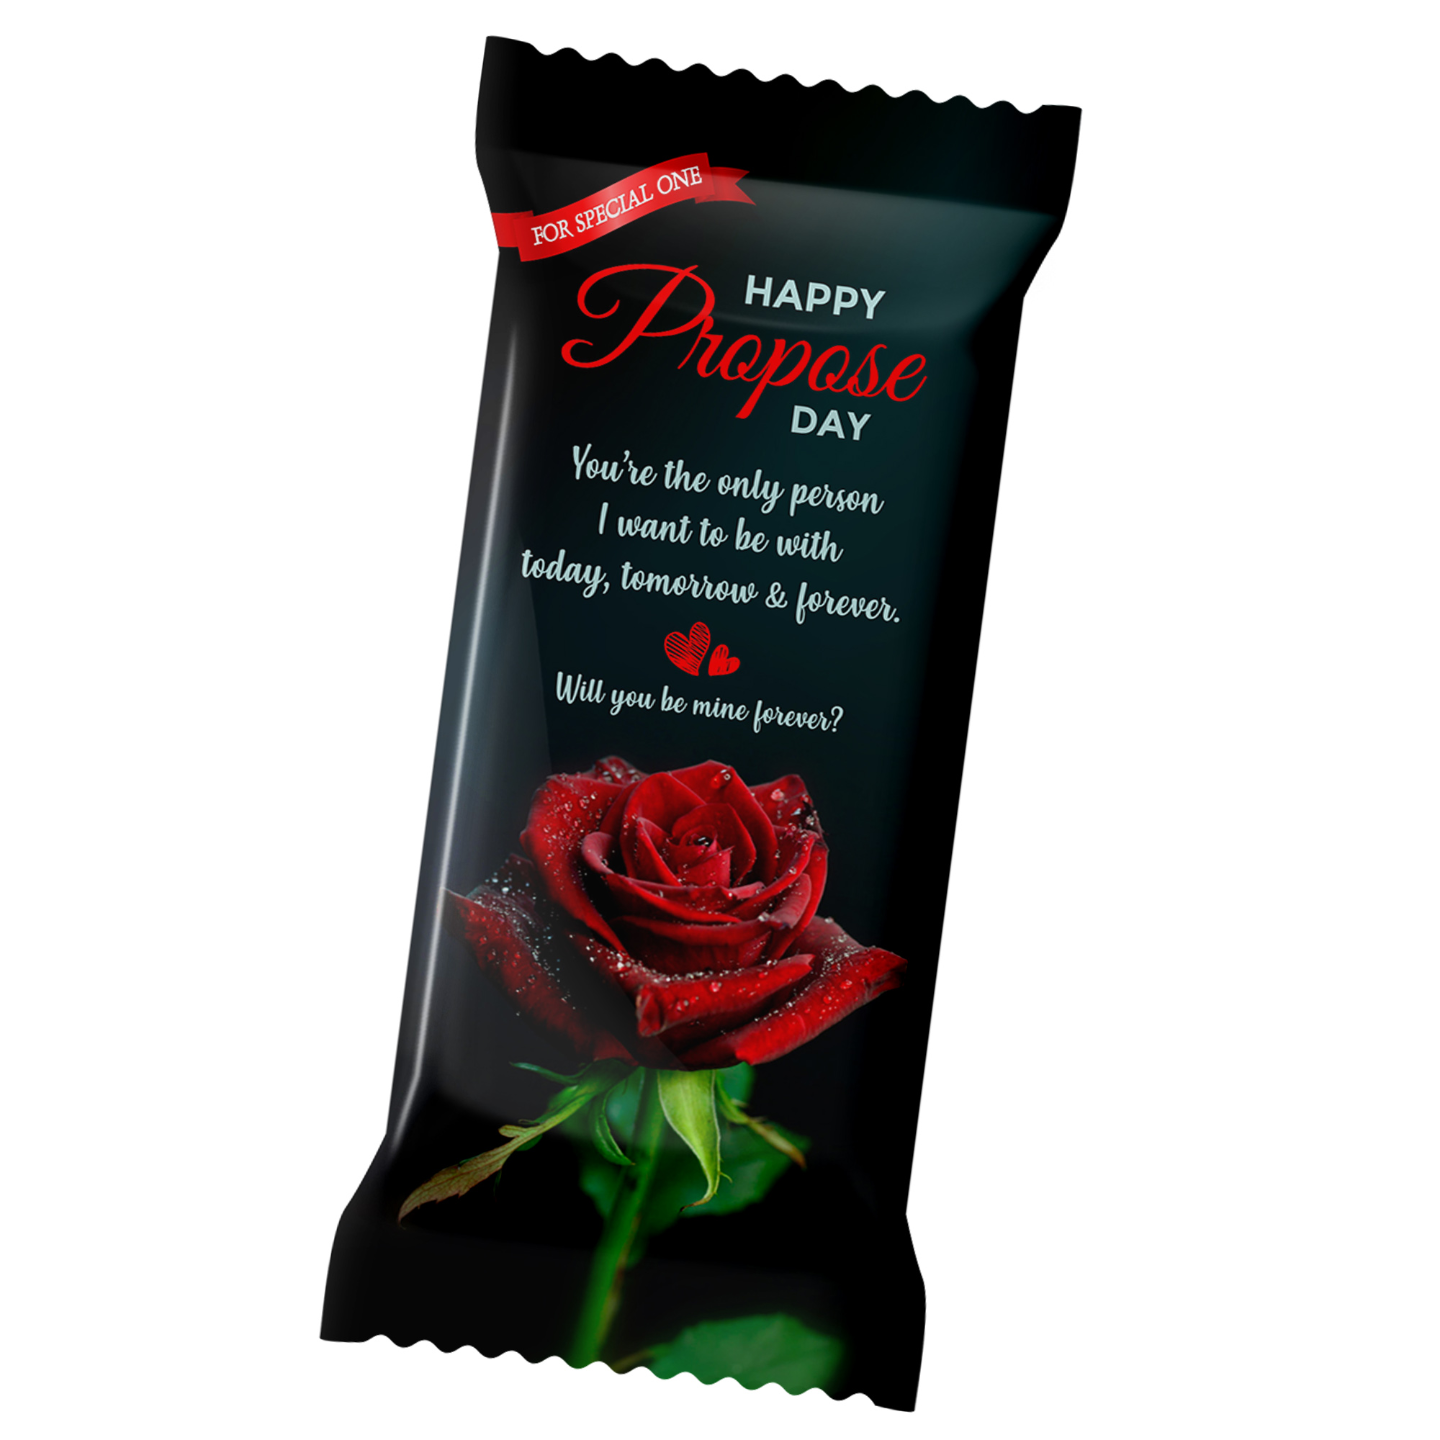 Propose Day Personalized Chocolate Bar 100g